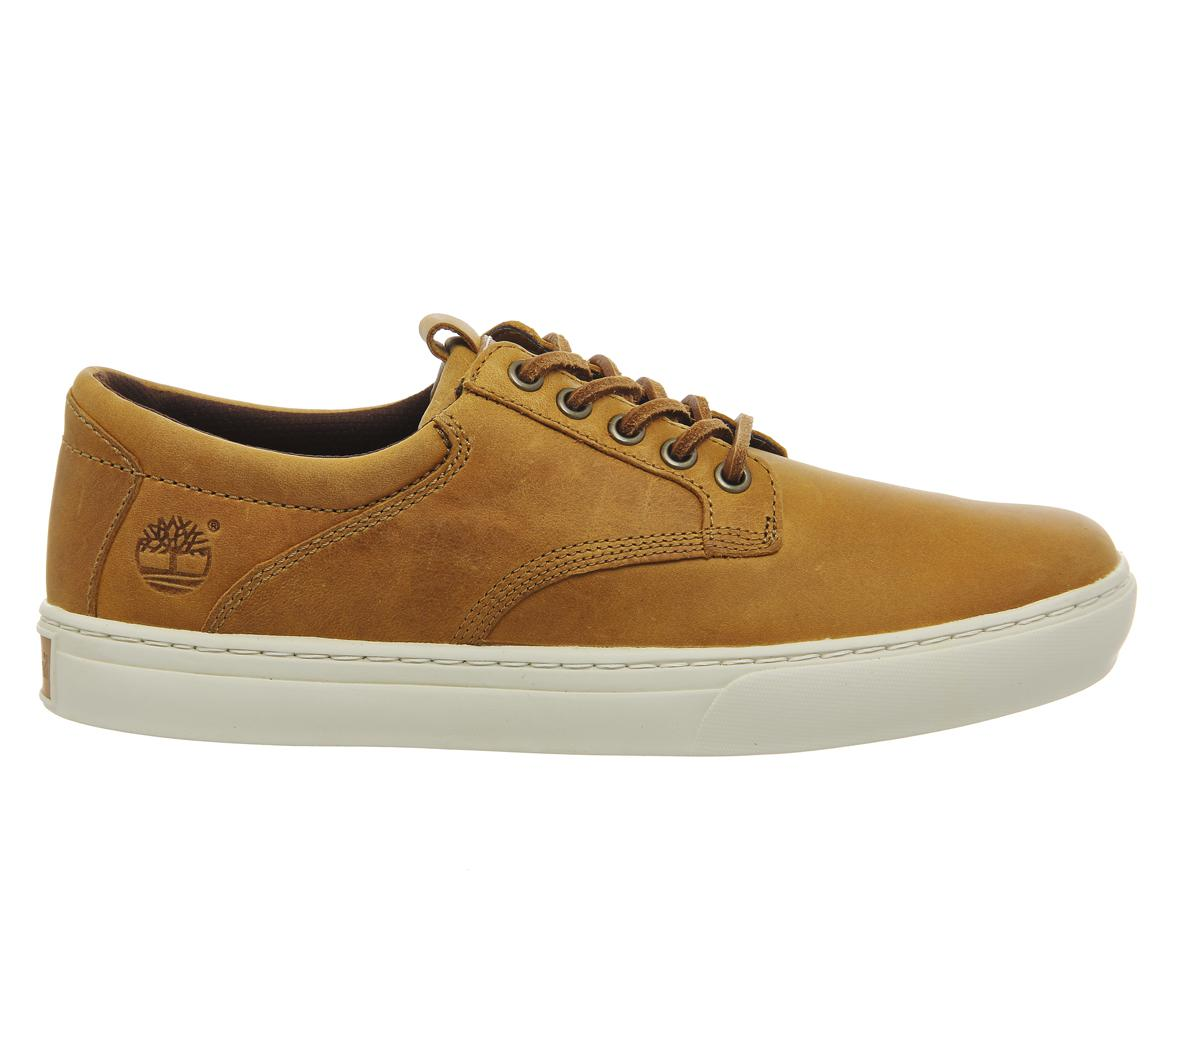 timberland adventure 2 0 cupsole oxford in brown for men lyst. Black Bedroom Furniture Sets. Home Design Ideas